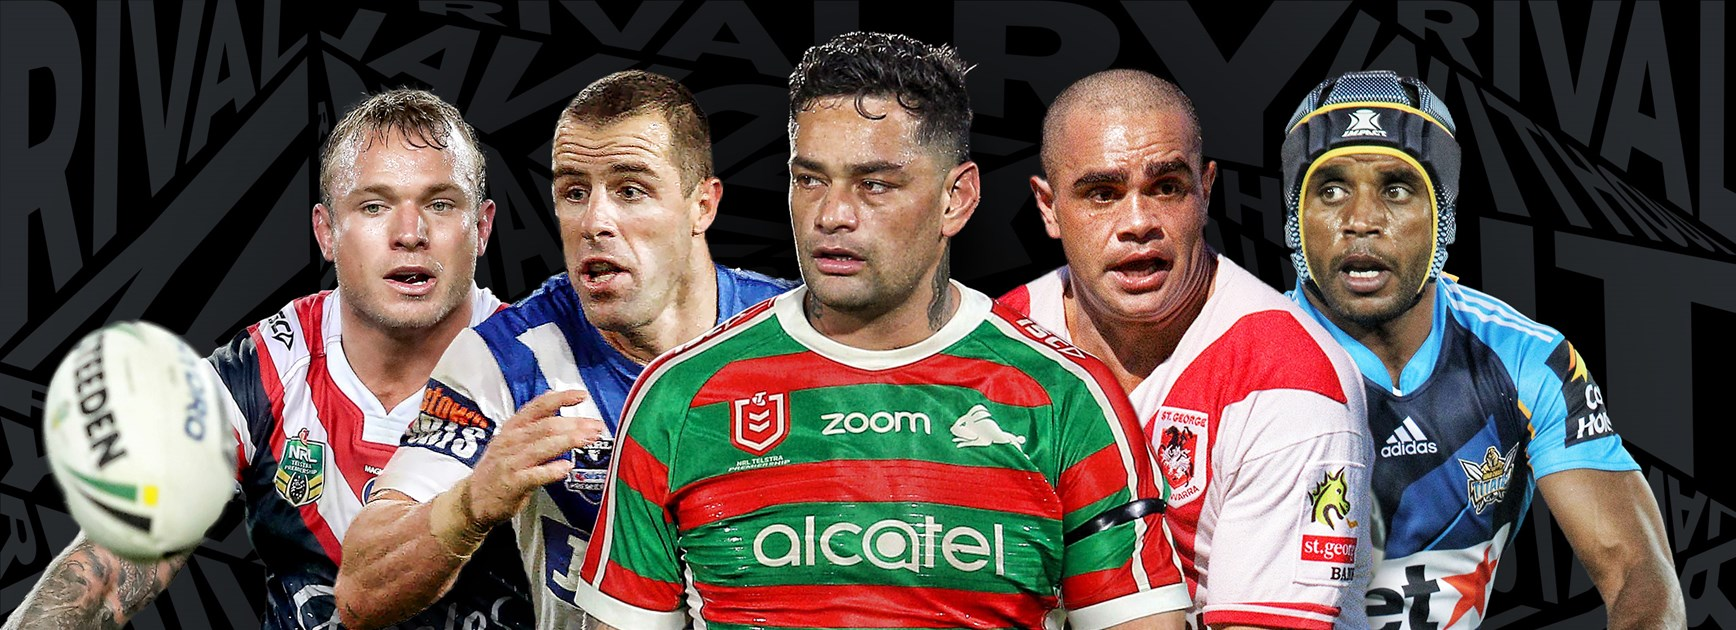 Fans select Sutton as the best player to never play Origin